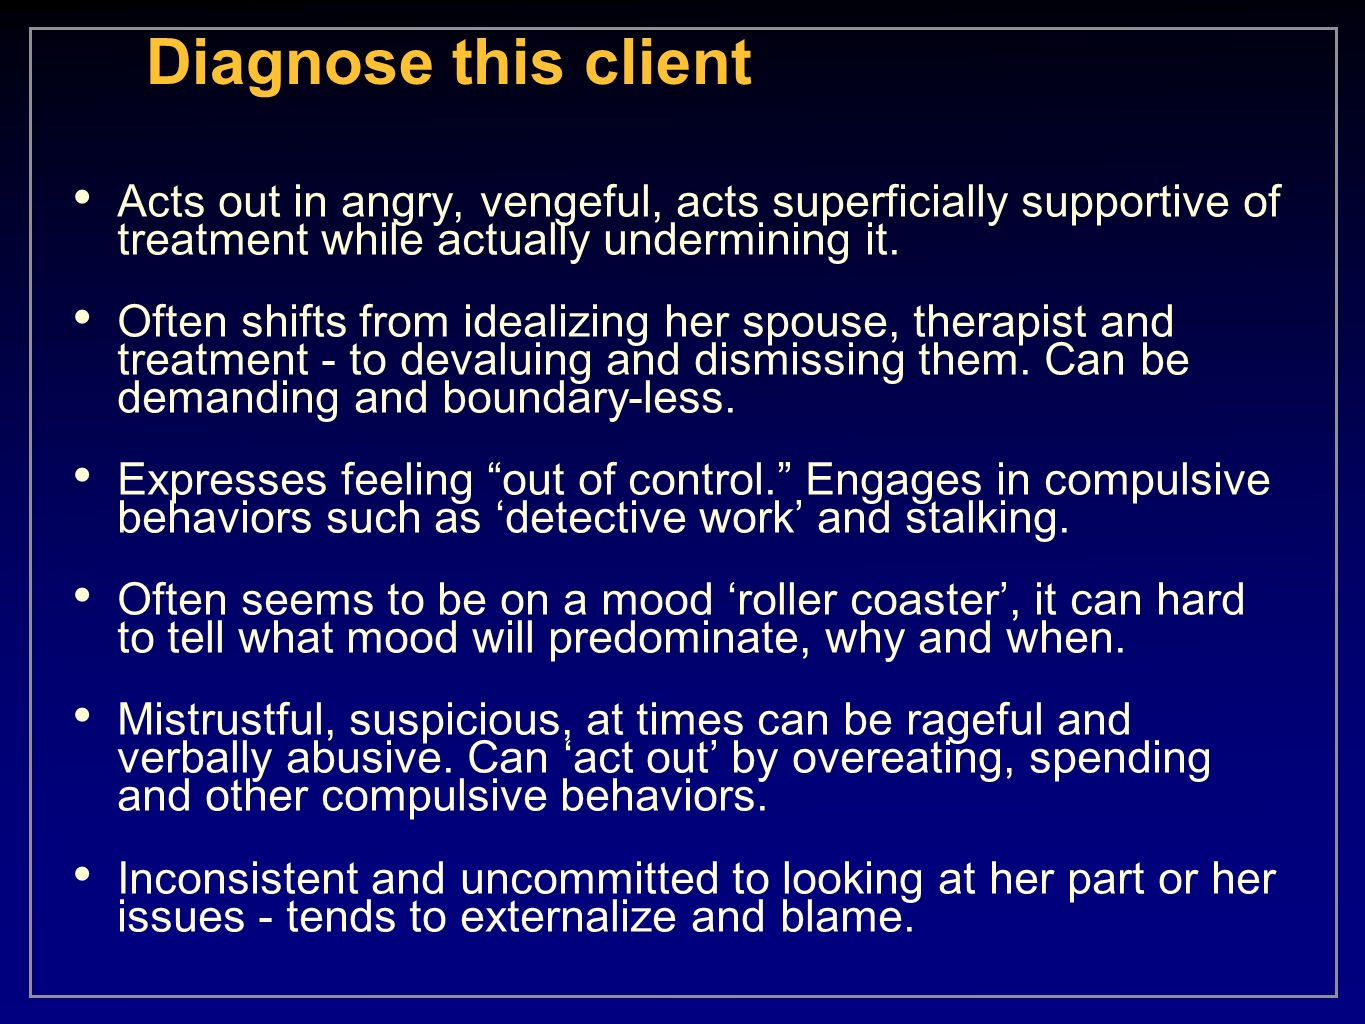 Diagnose this client Acts out in angry, vengeful, acts superficially supportive of treatment while actually undermining it.